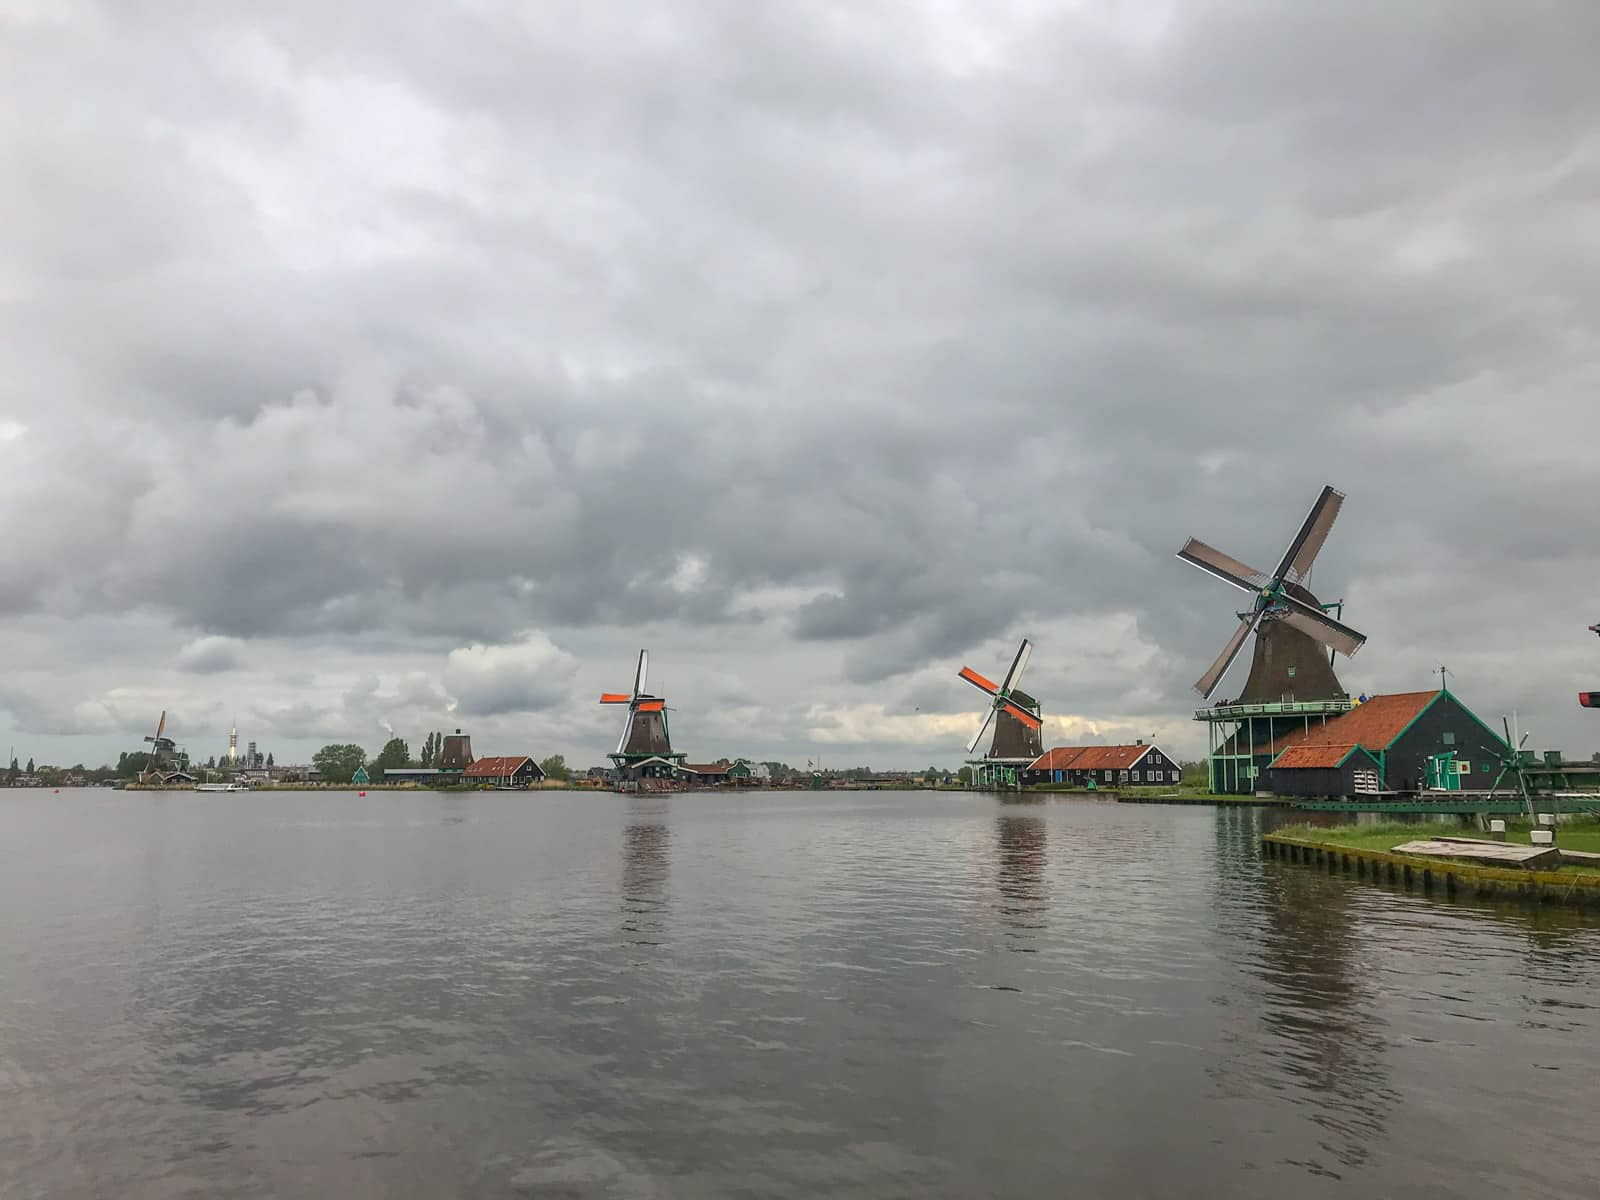 Several windmills spread out across land, seen from the opposite side of a river